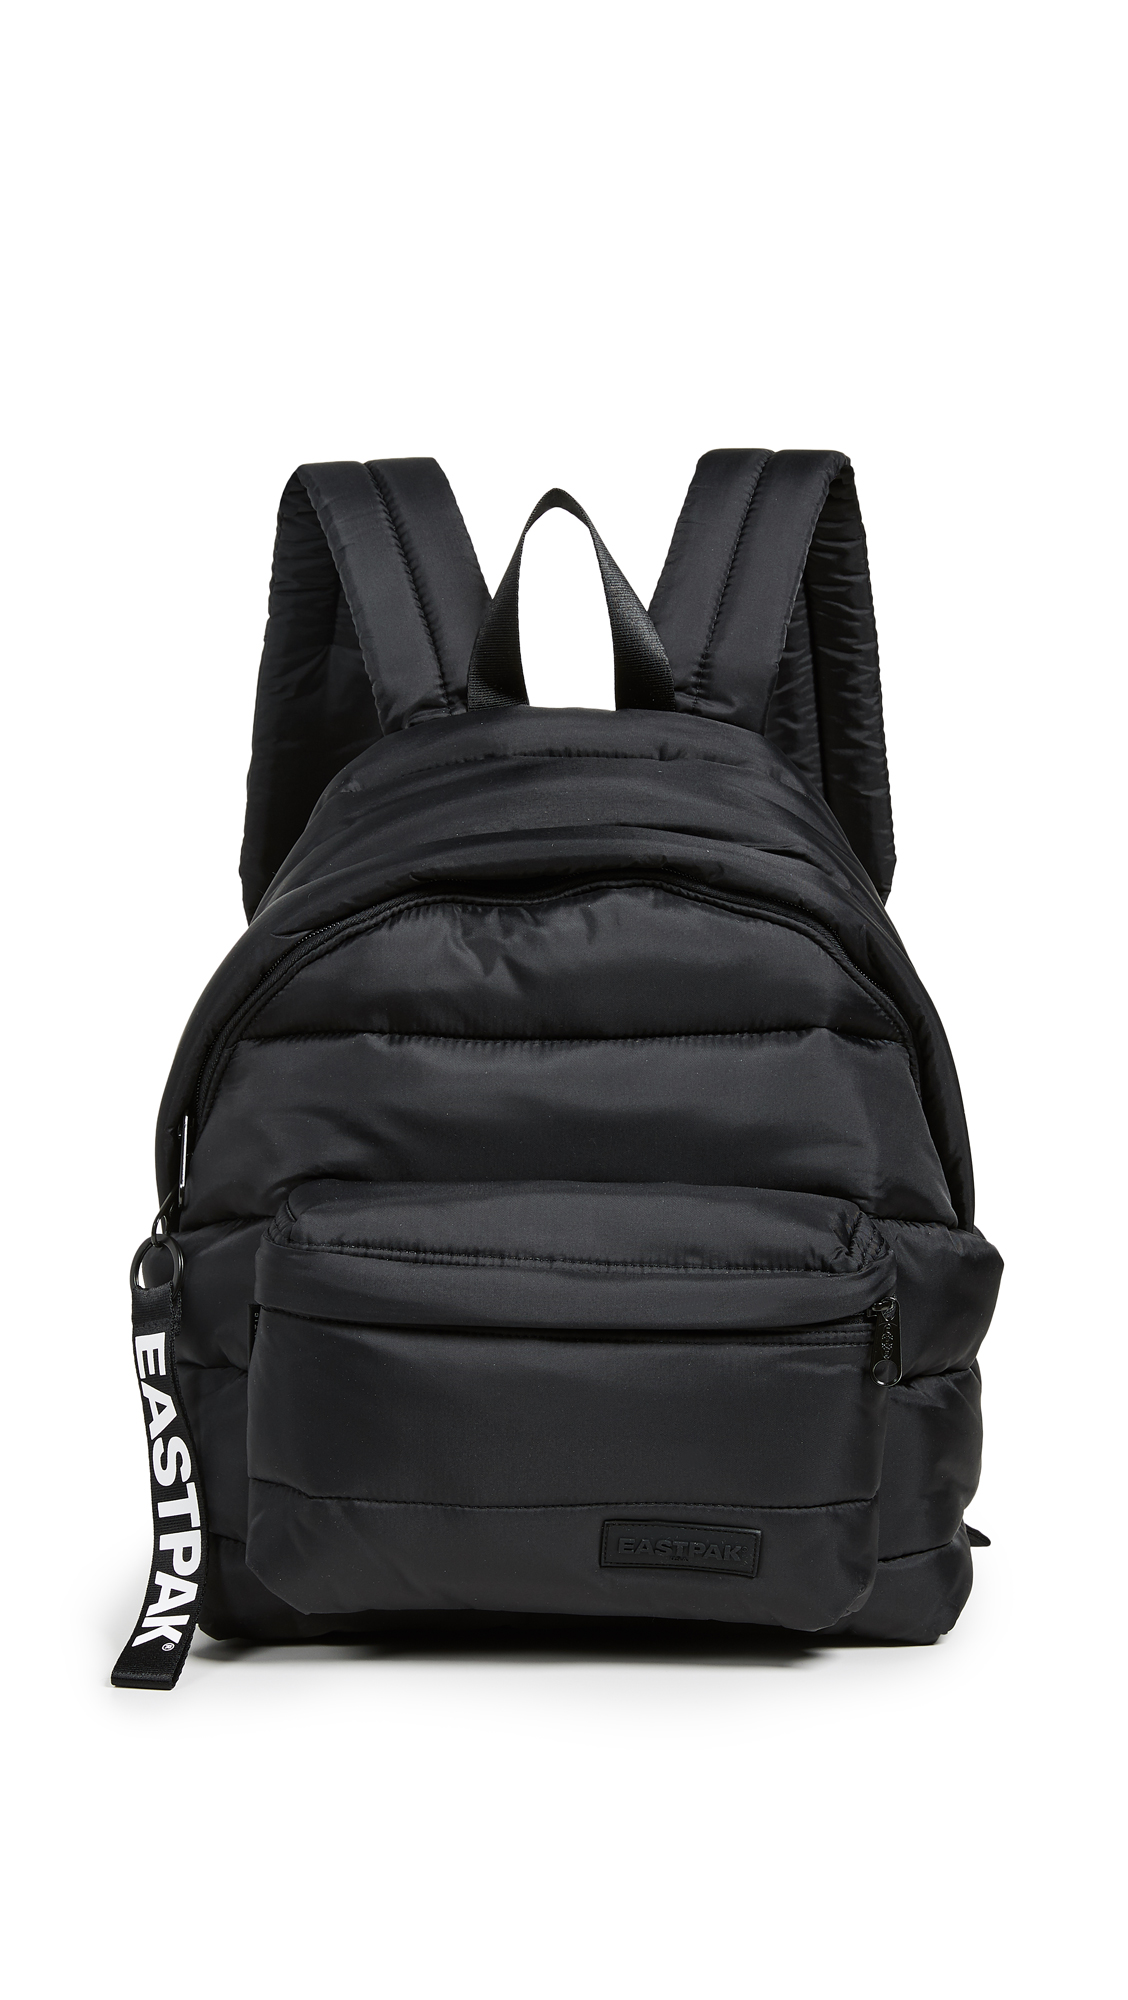 EASTPAK Padded Pak'R Puffer Backpack - Black